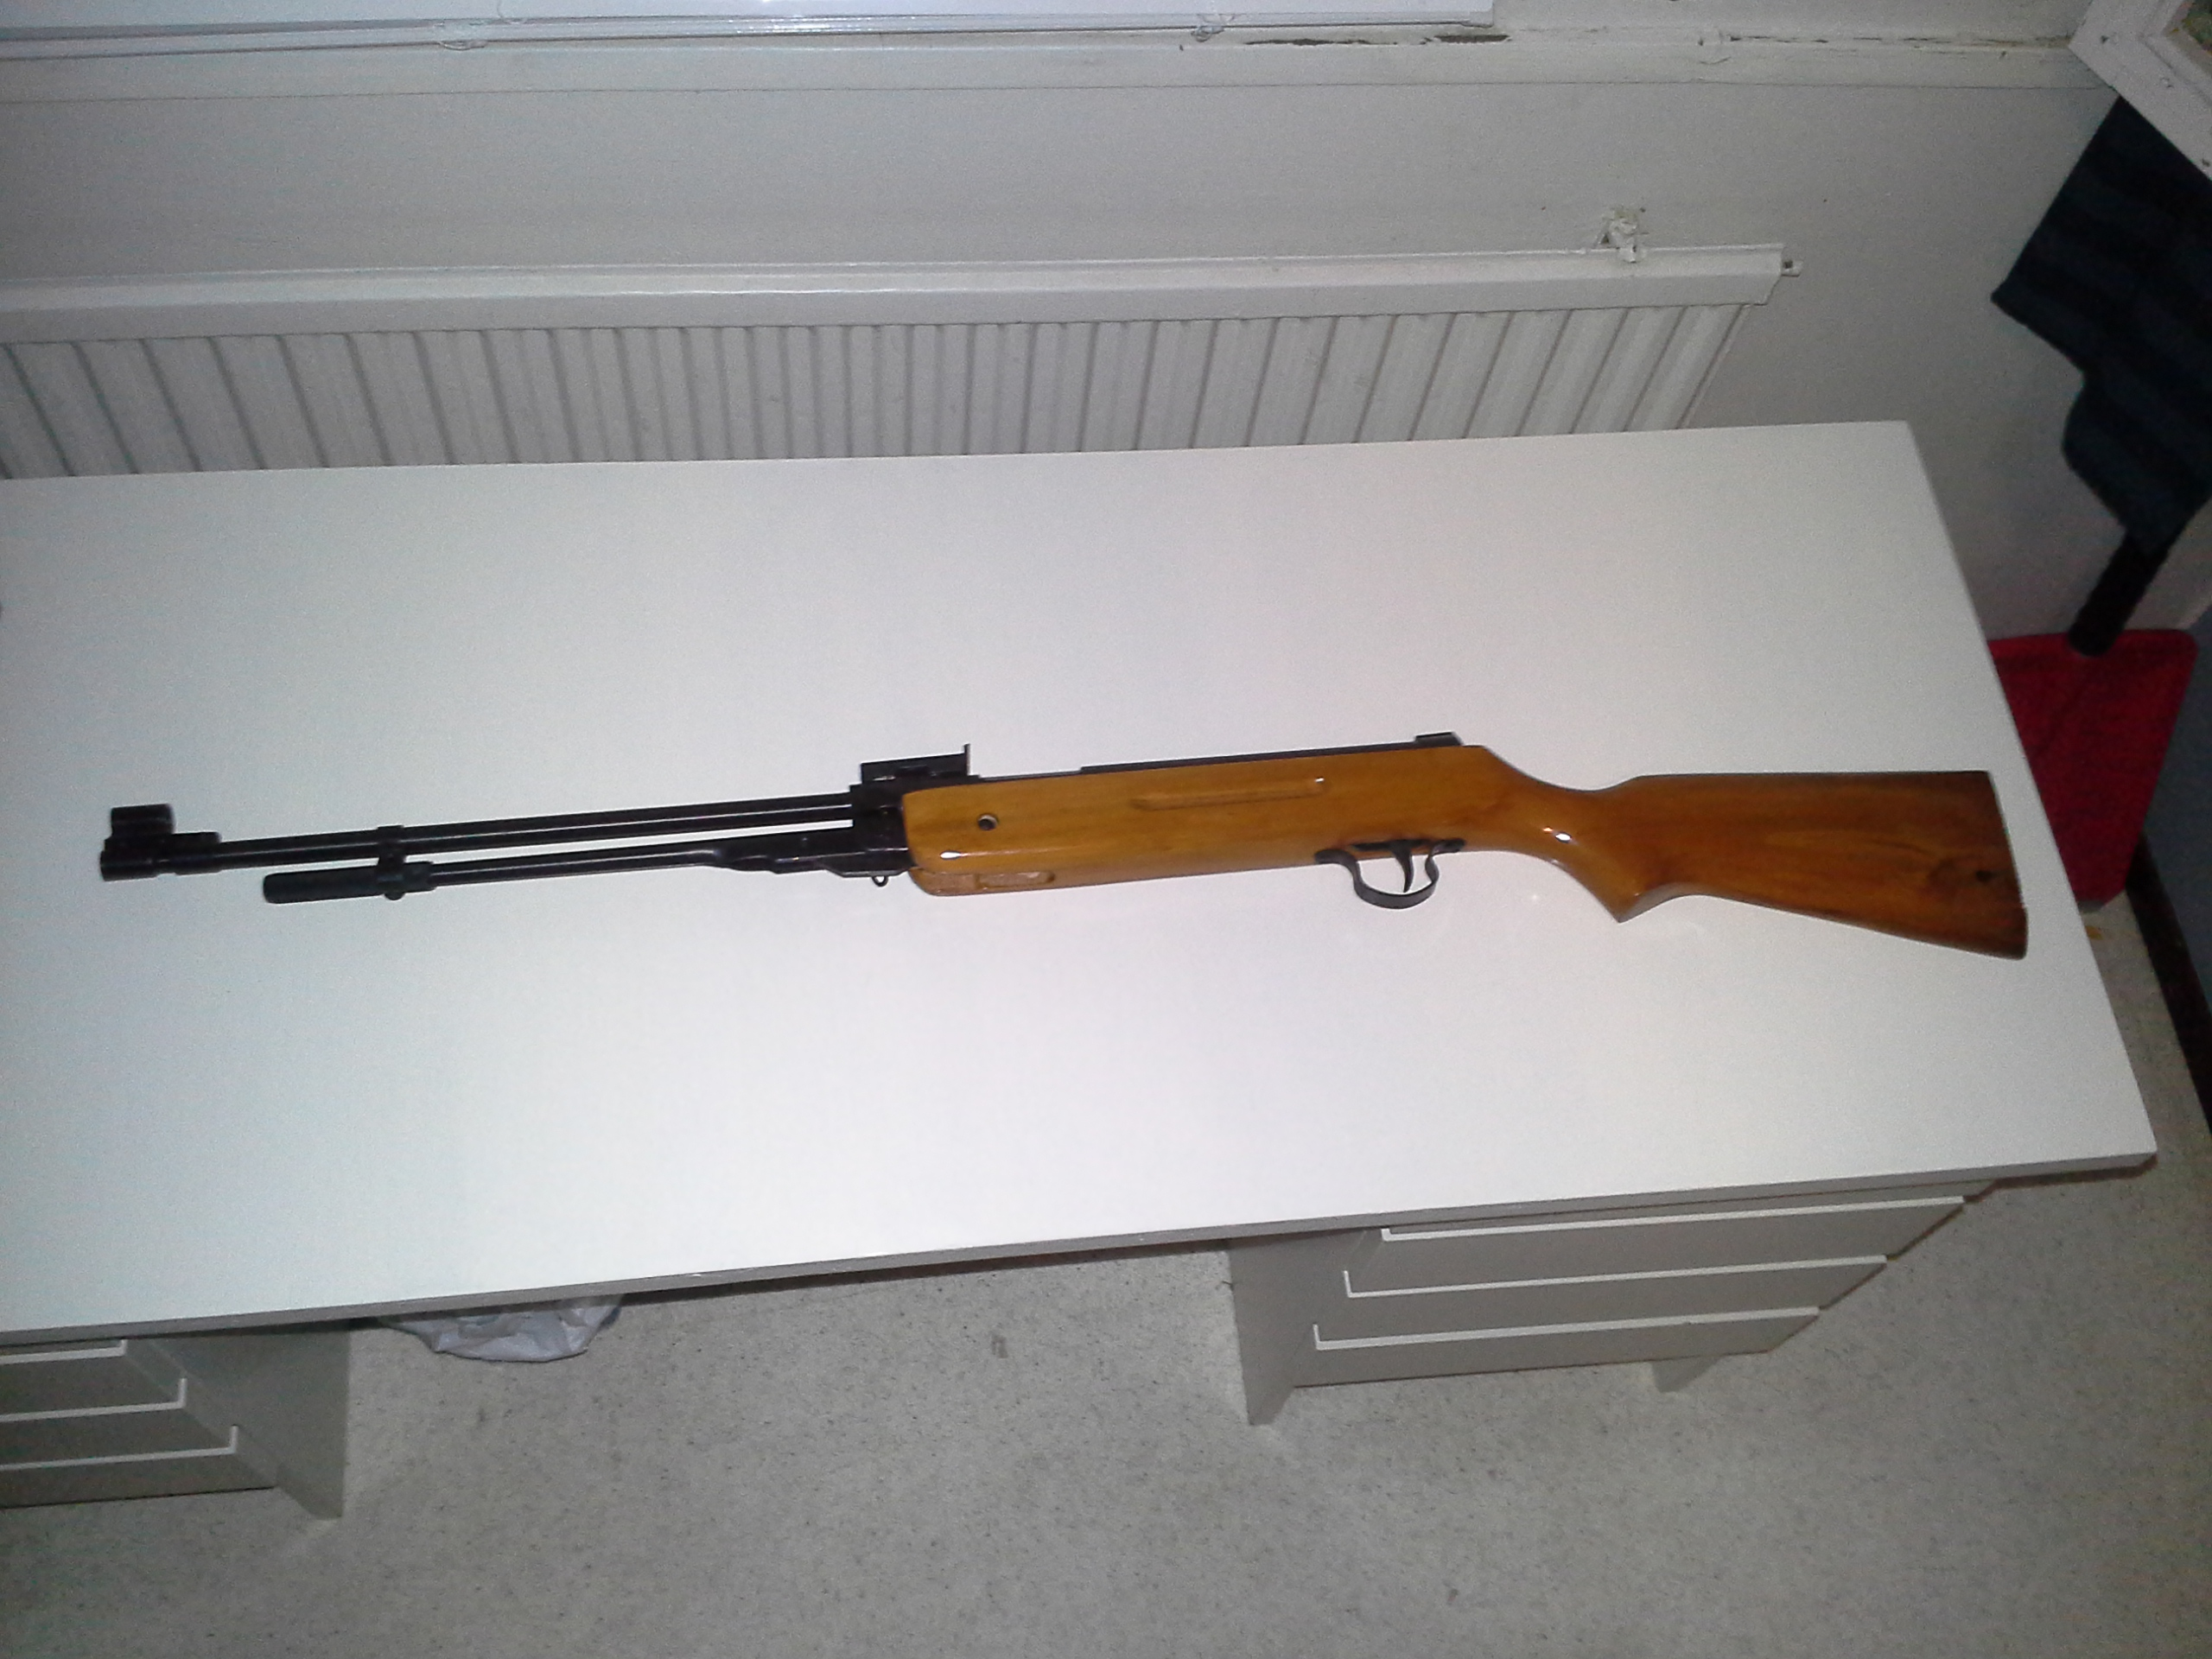 File:The Chinese made underlever airgun B3-1 2014-01-25 21